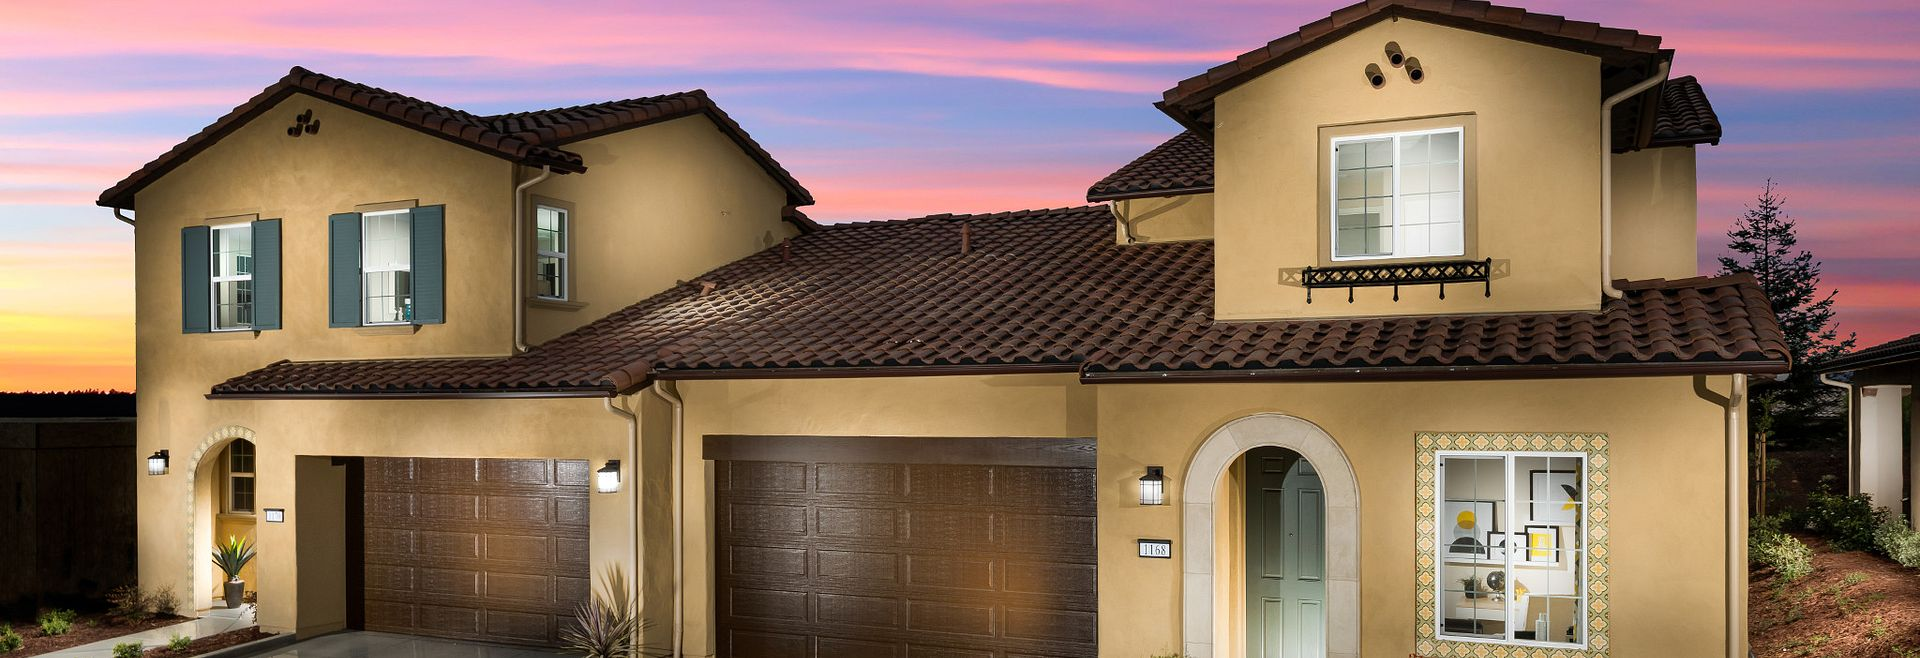 Trilogy at Monarch Dunes Townhomes